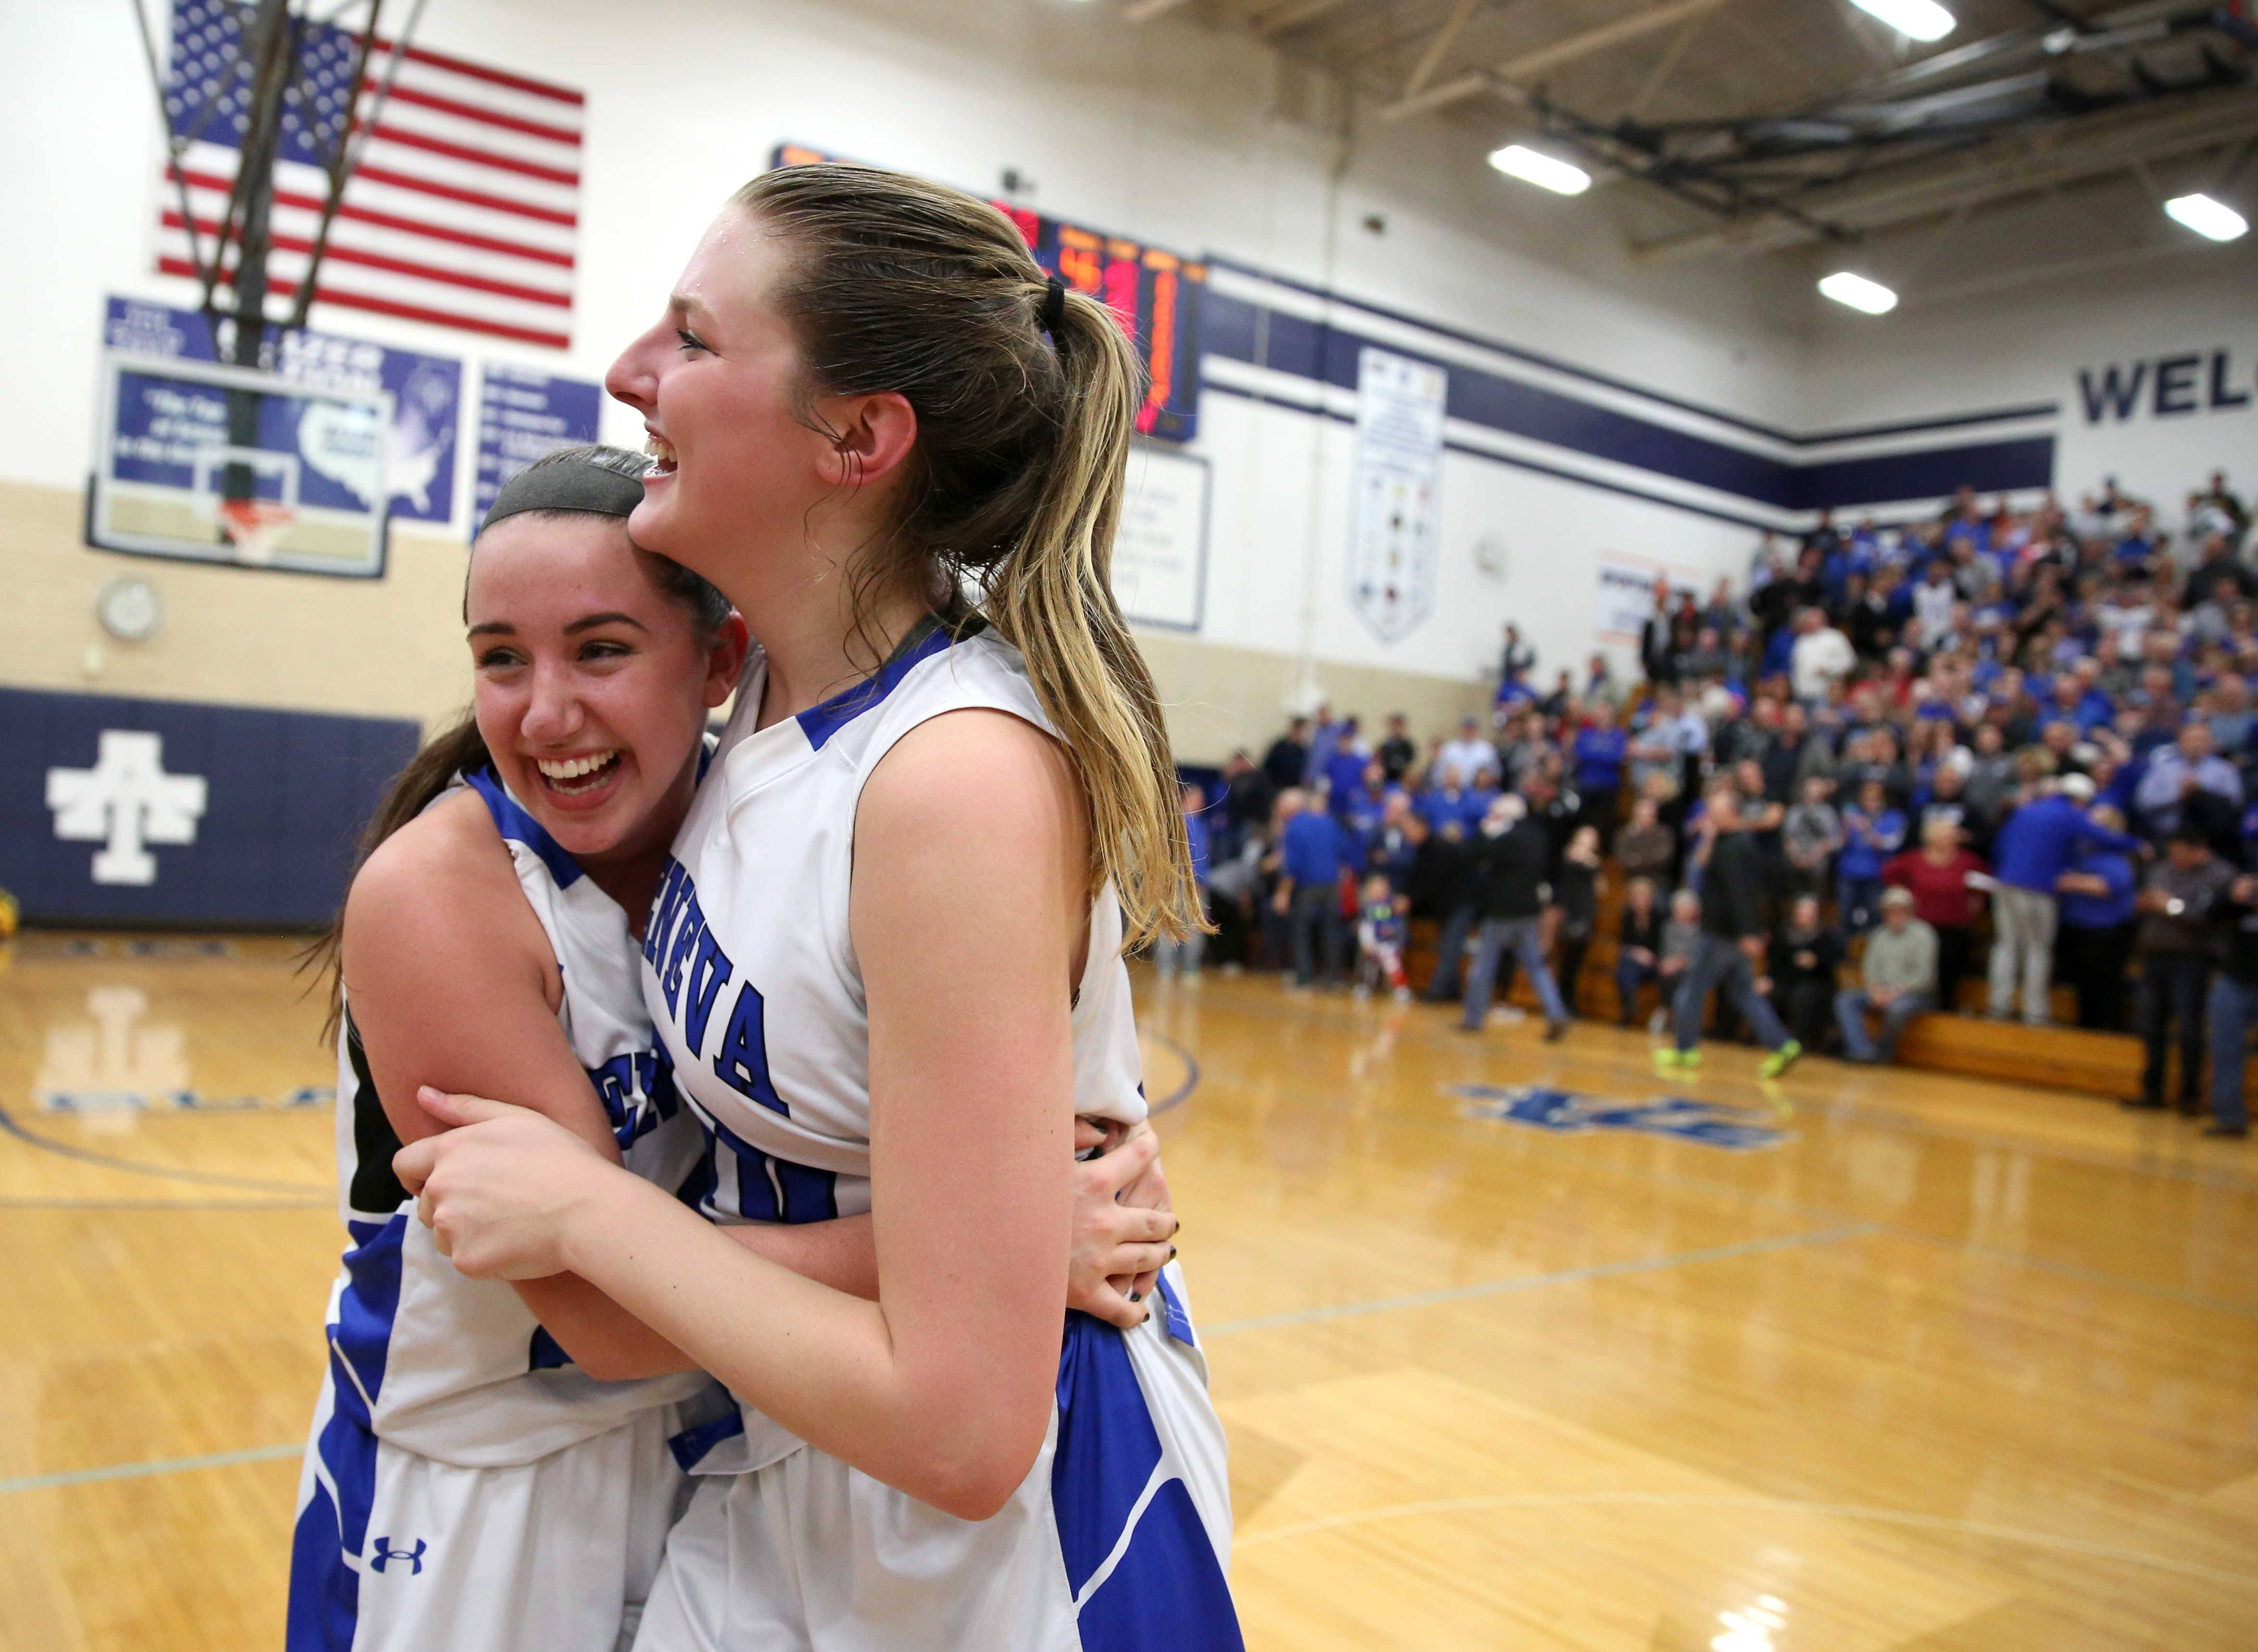 Geneva's Margaret Whitley, left, and Grace Loberg embrace after a win over Maine West during girls basketball supersectional action at Addison Trail High School Monday night.